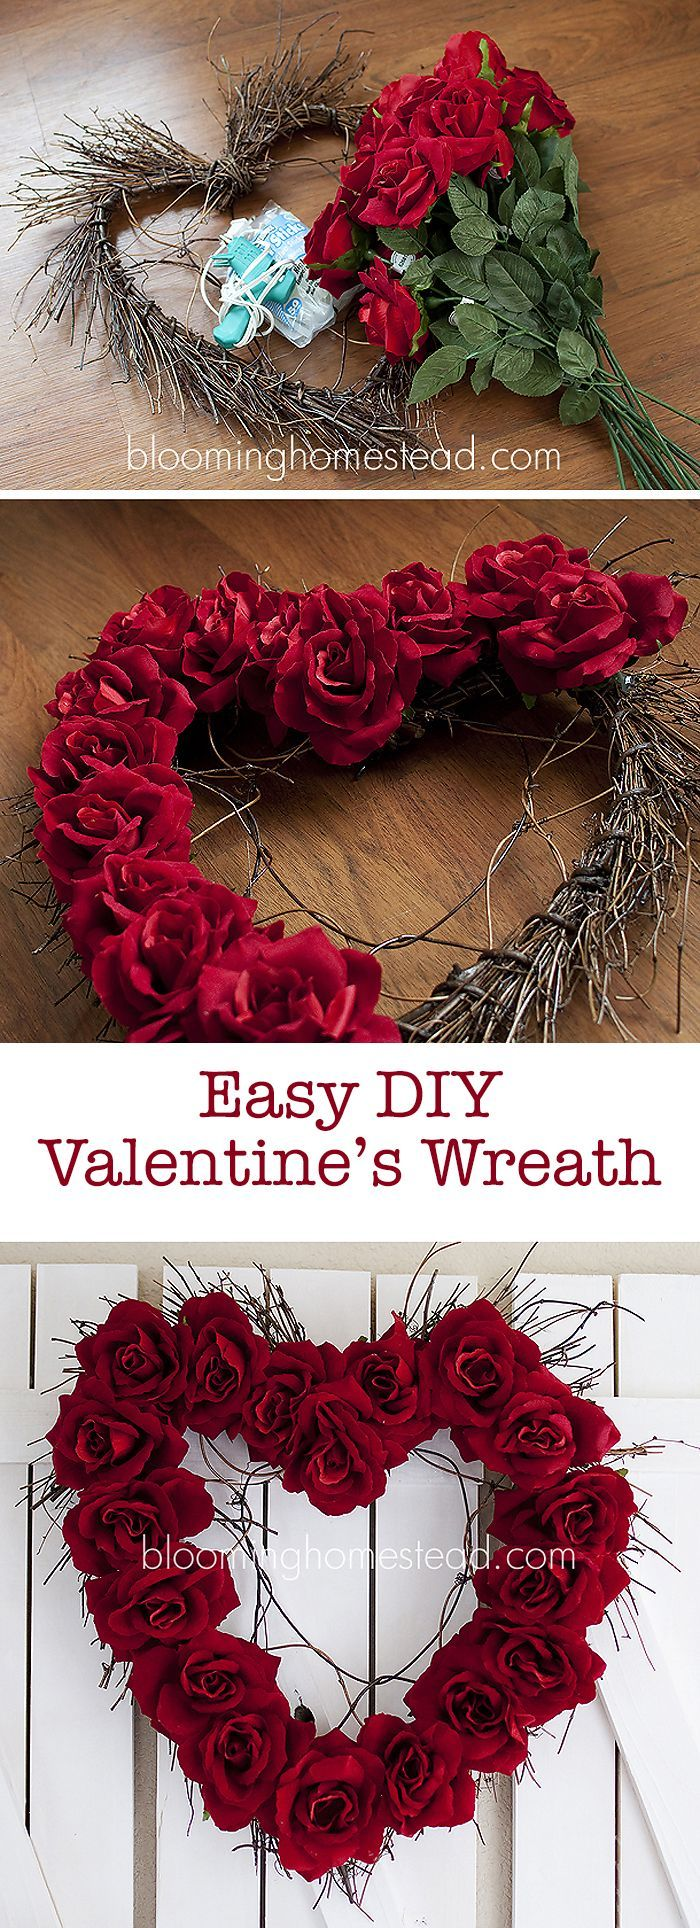 DIY Valentine Wreath that is so easy to make and oh so pretty